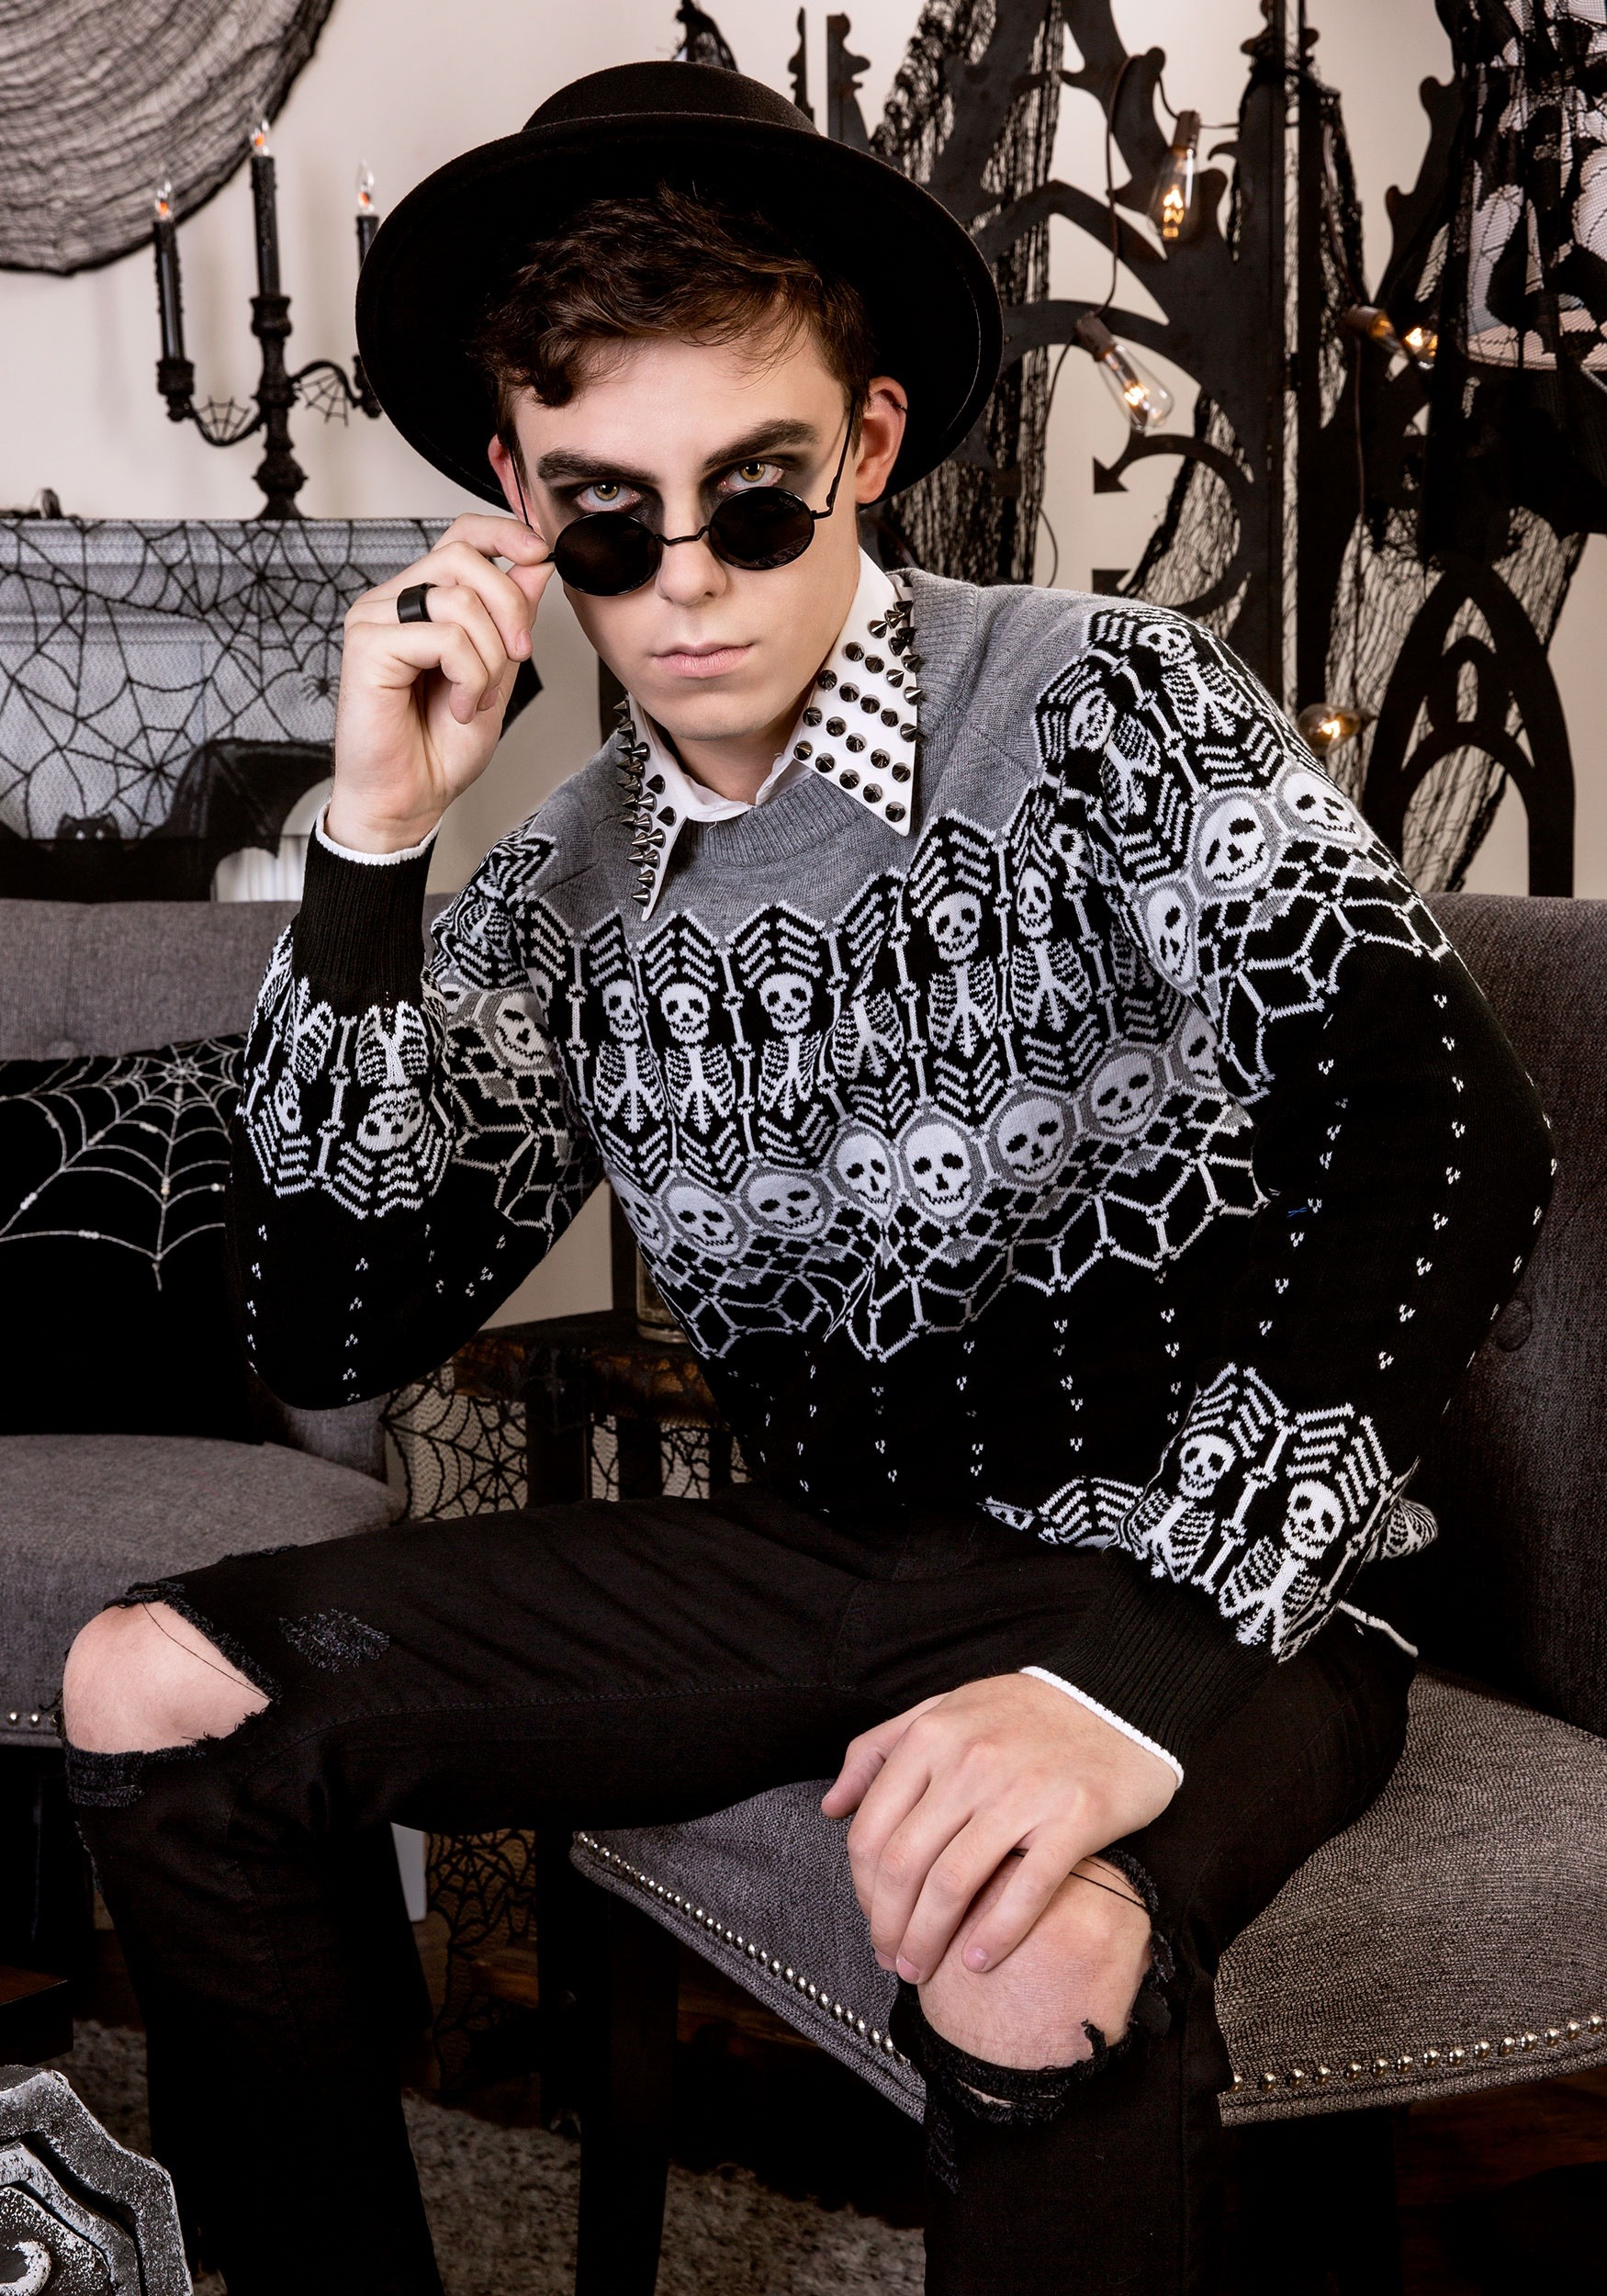 329925ee30e Black and White Skeleton Adult Ugly Halloween Sweater update